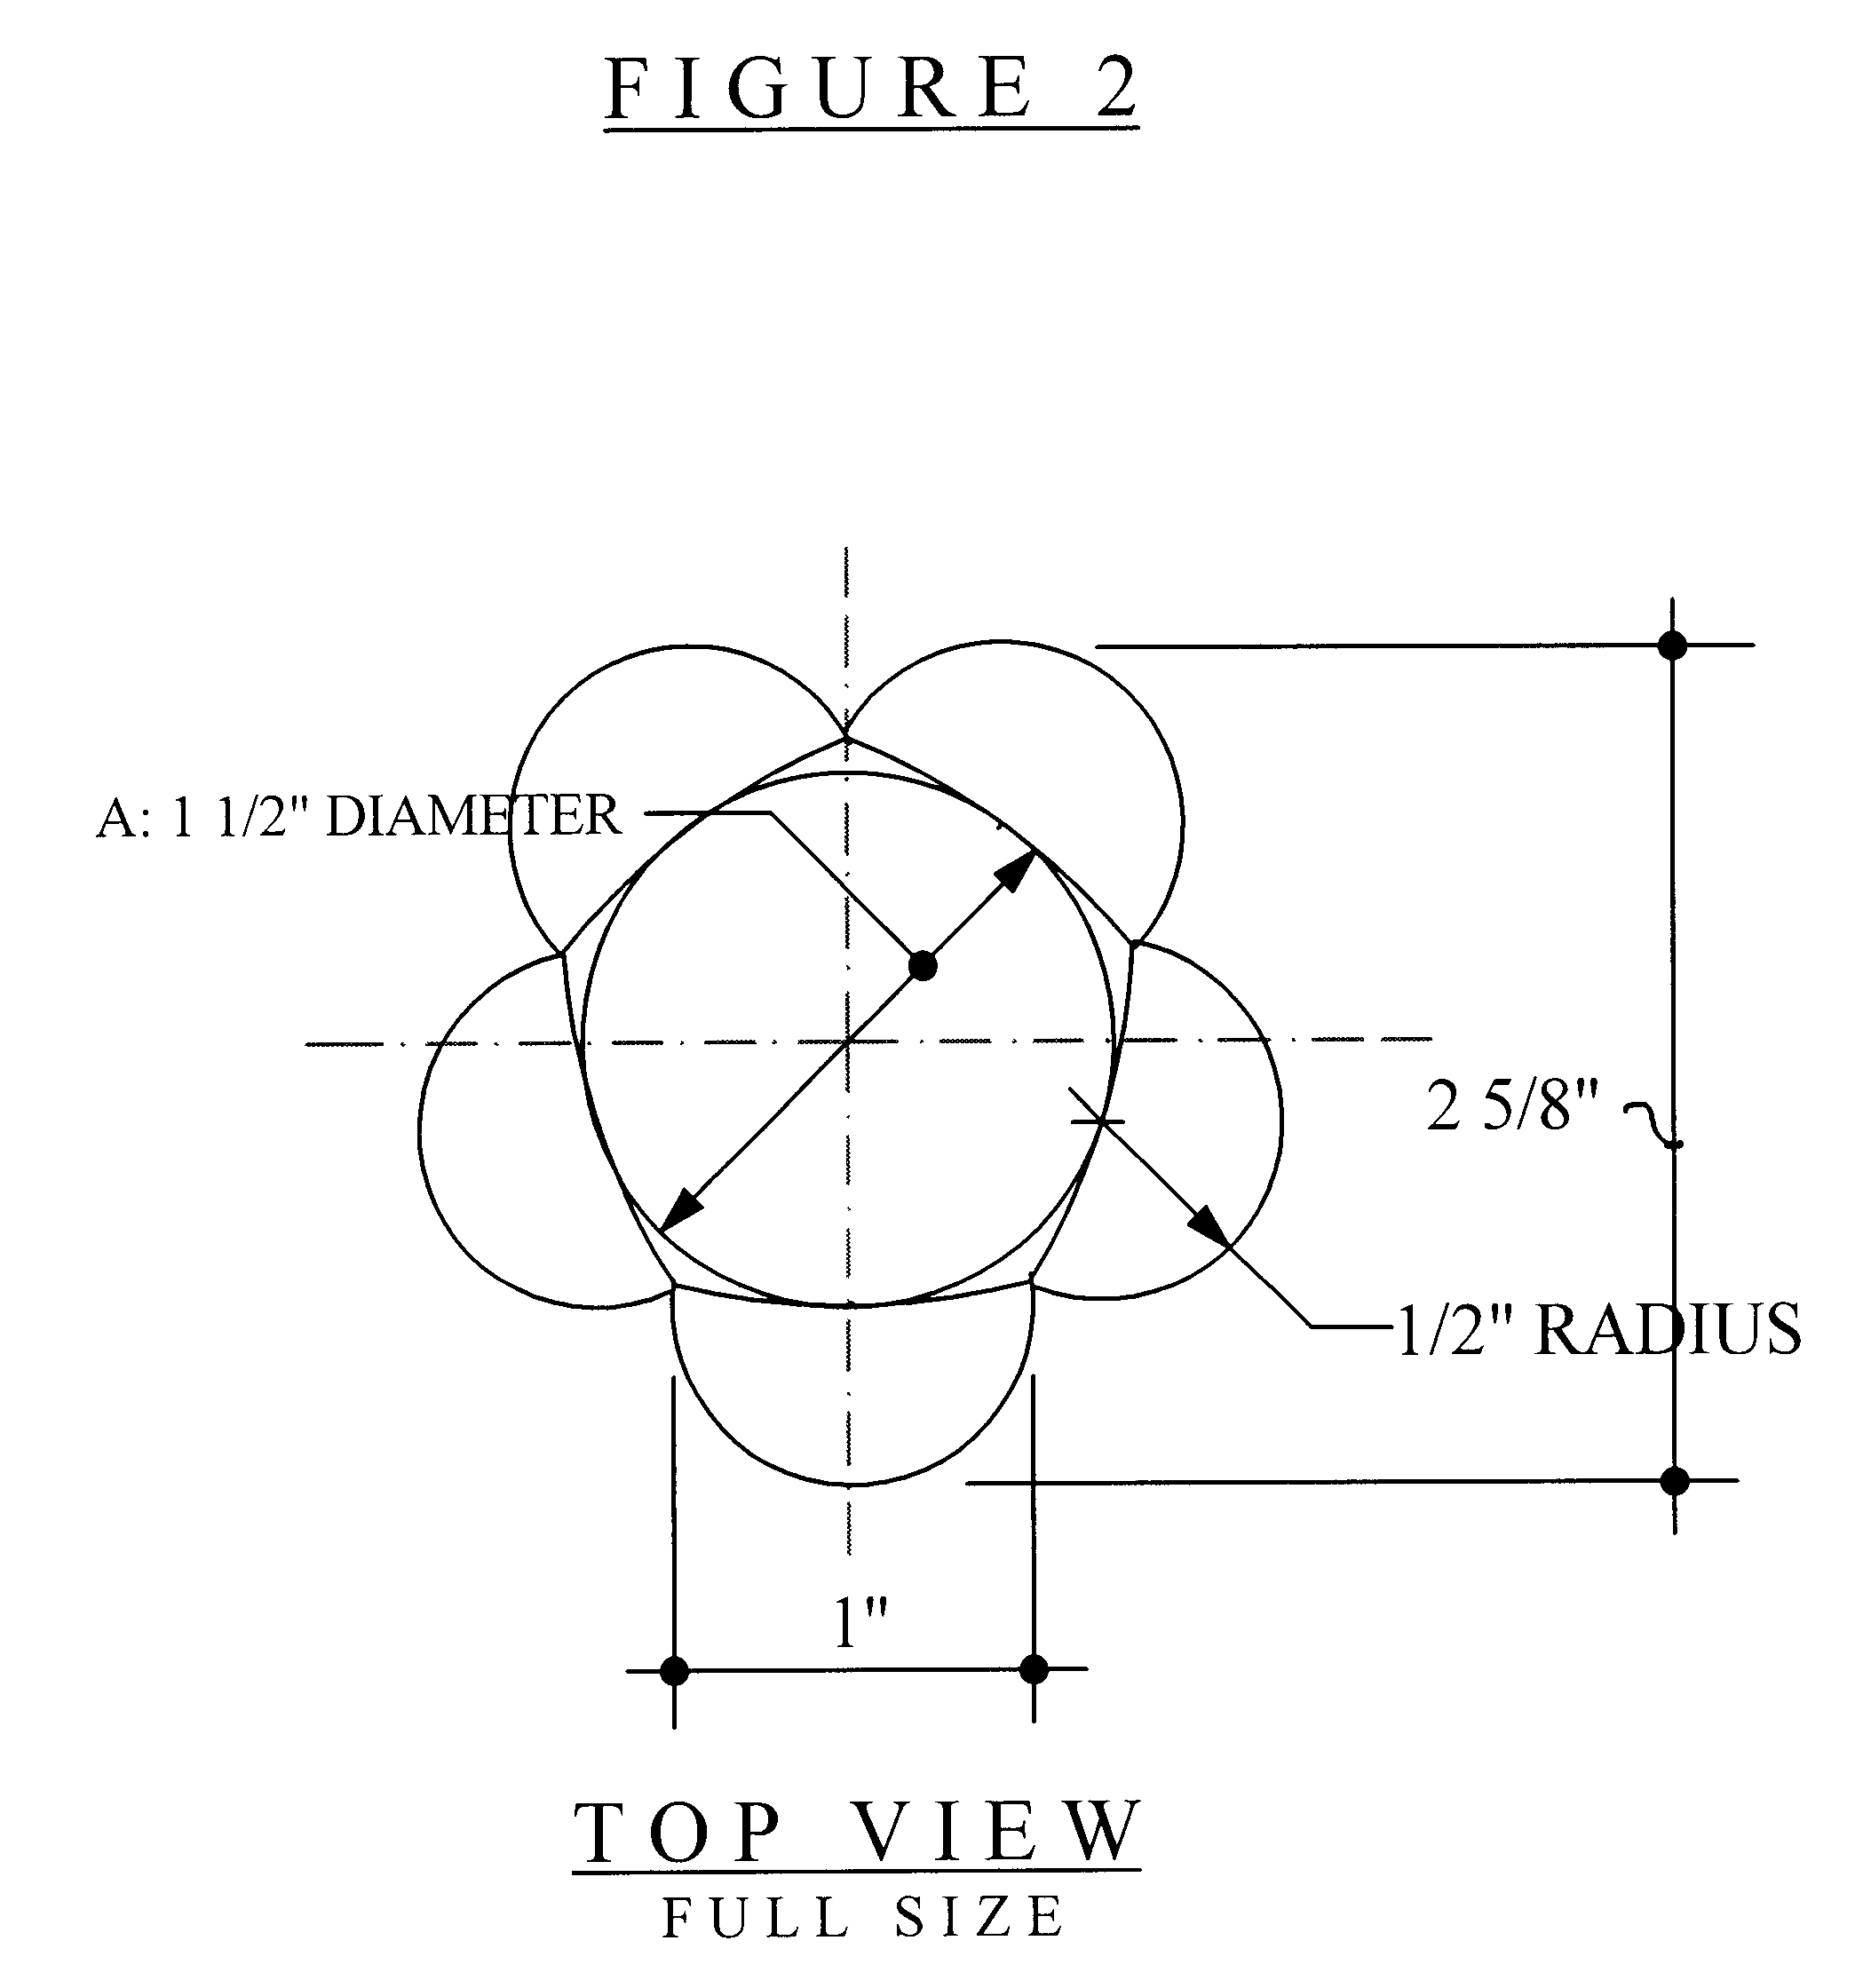 Patent drawing for reaction ball, intended to train ball players for unpredictable bounces.